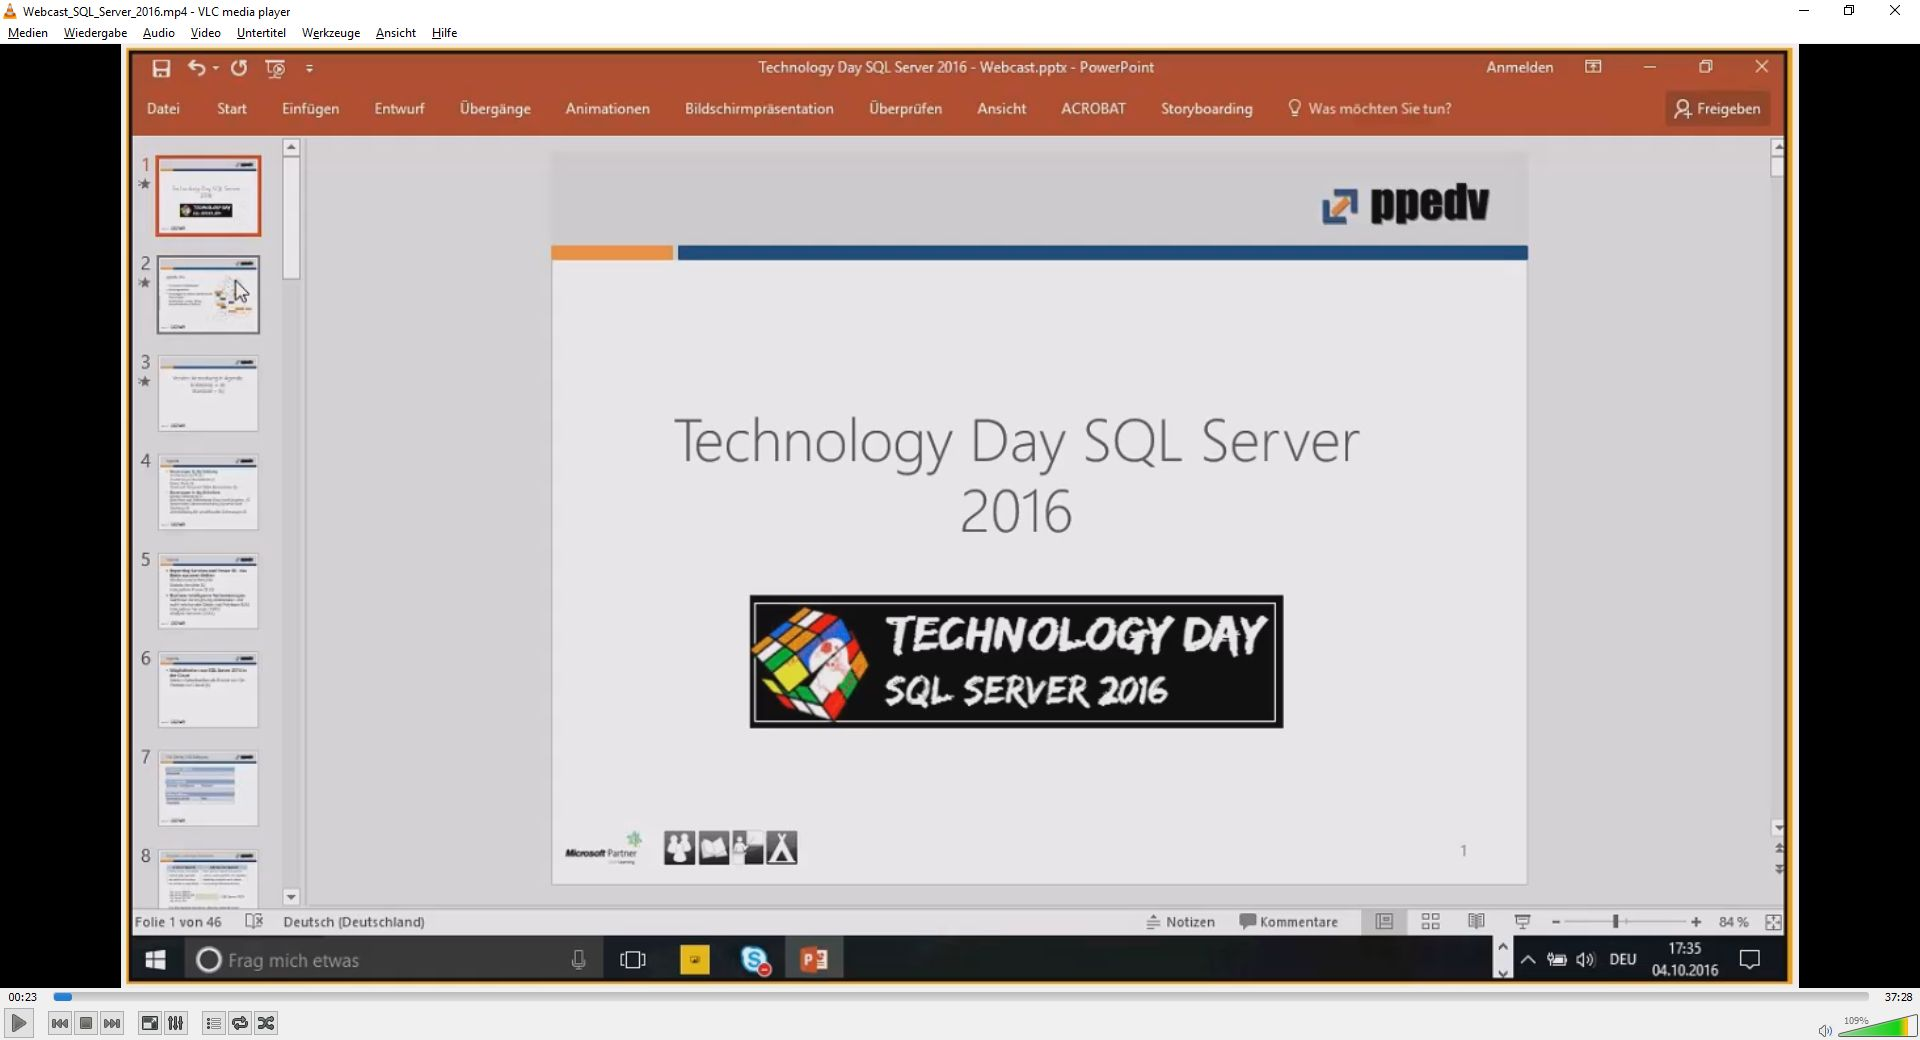 2016/Webcast/Technology-Day-SQL-Server-KlausBlessing